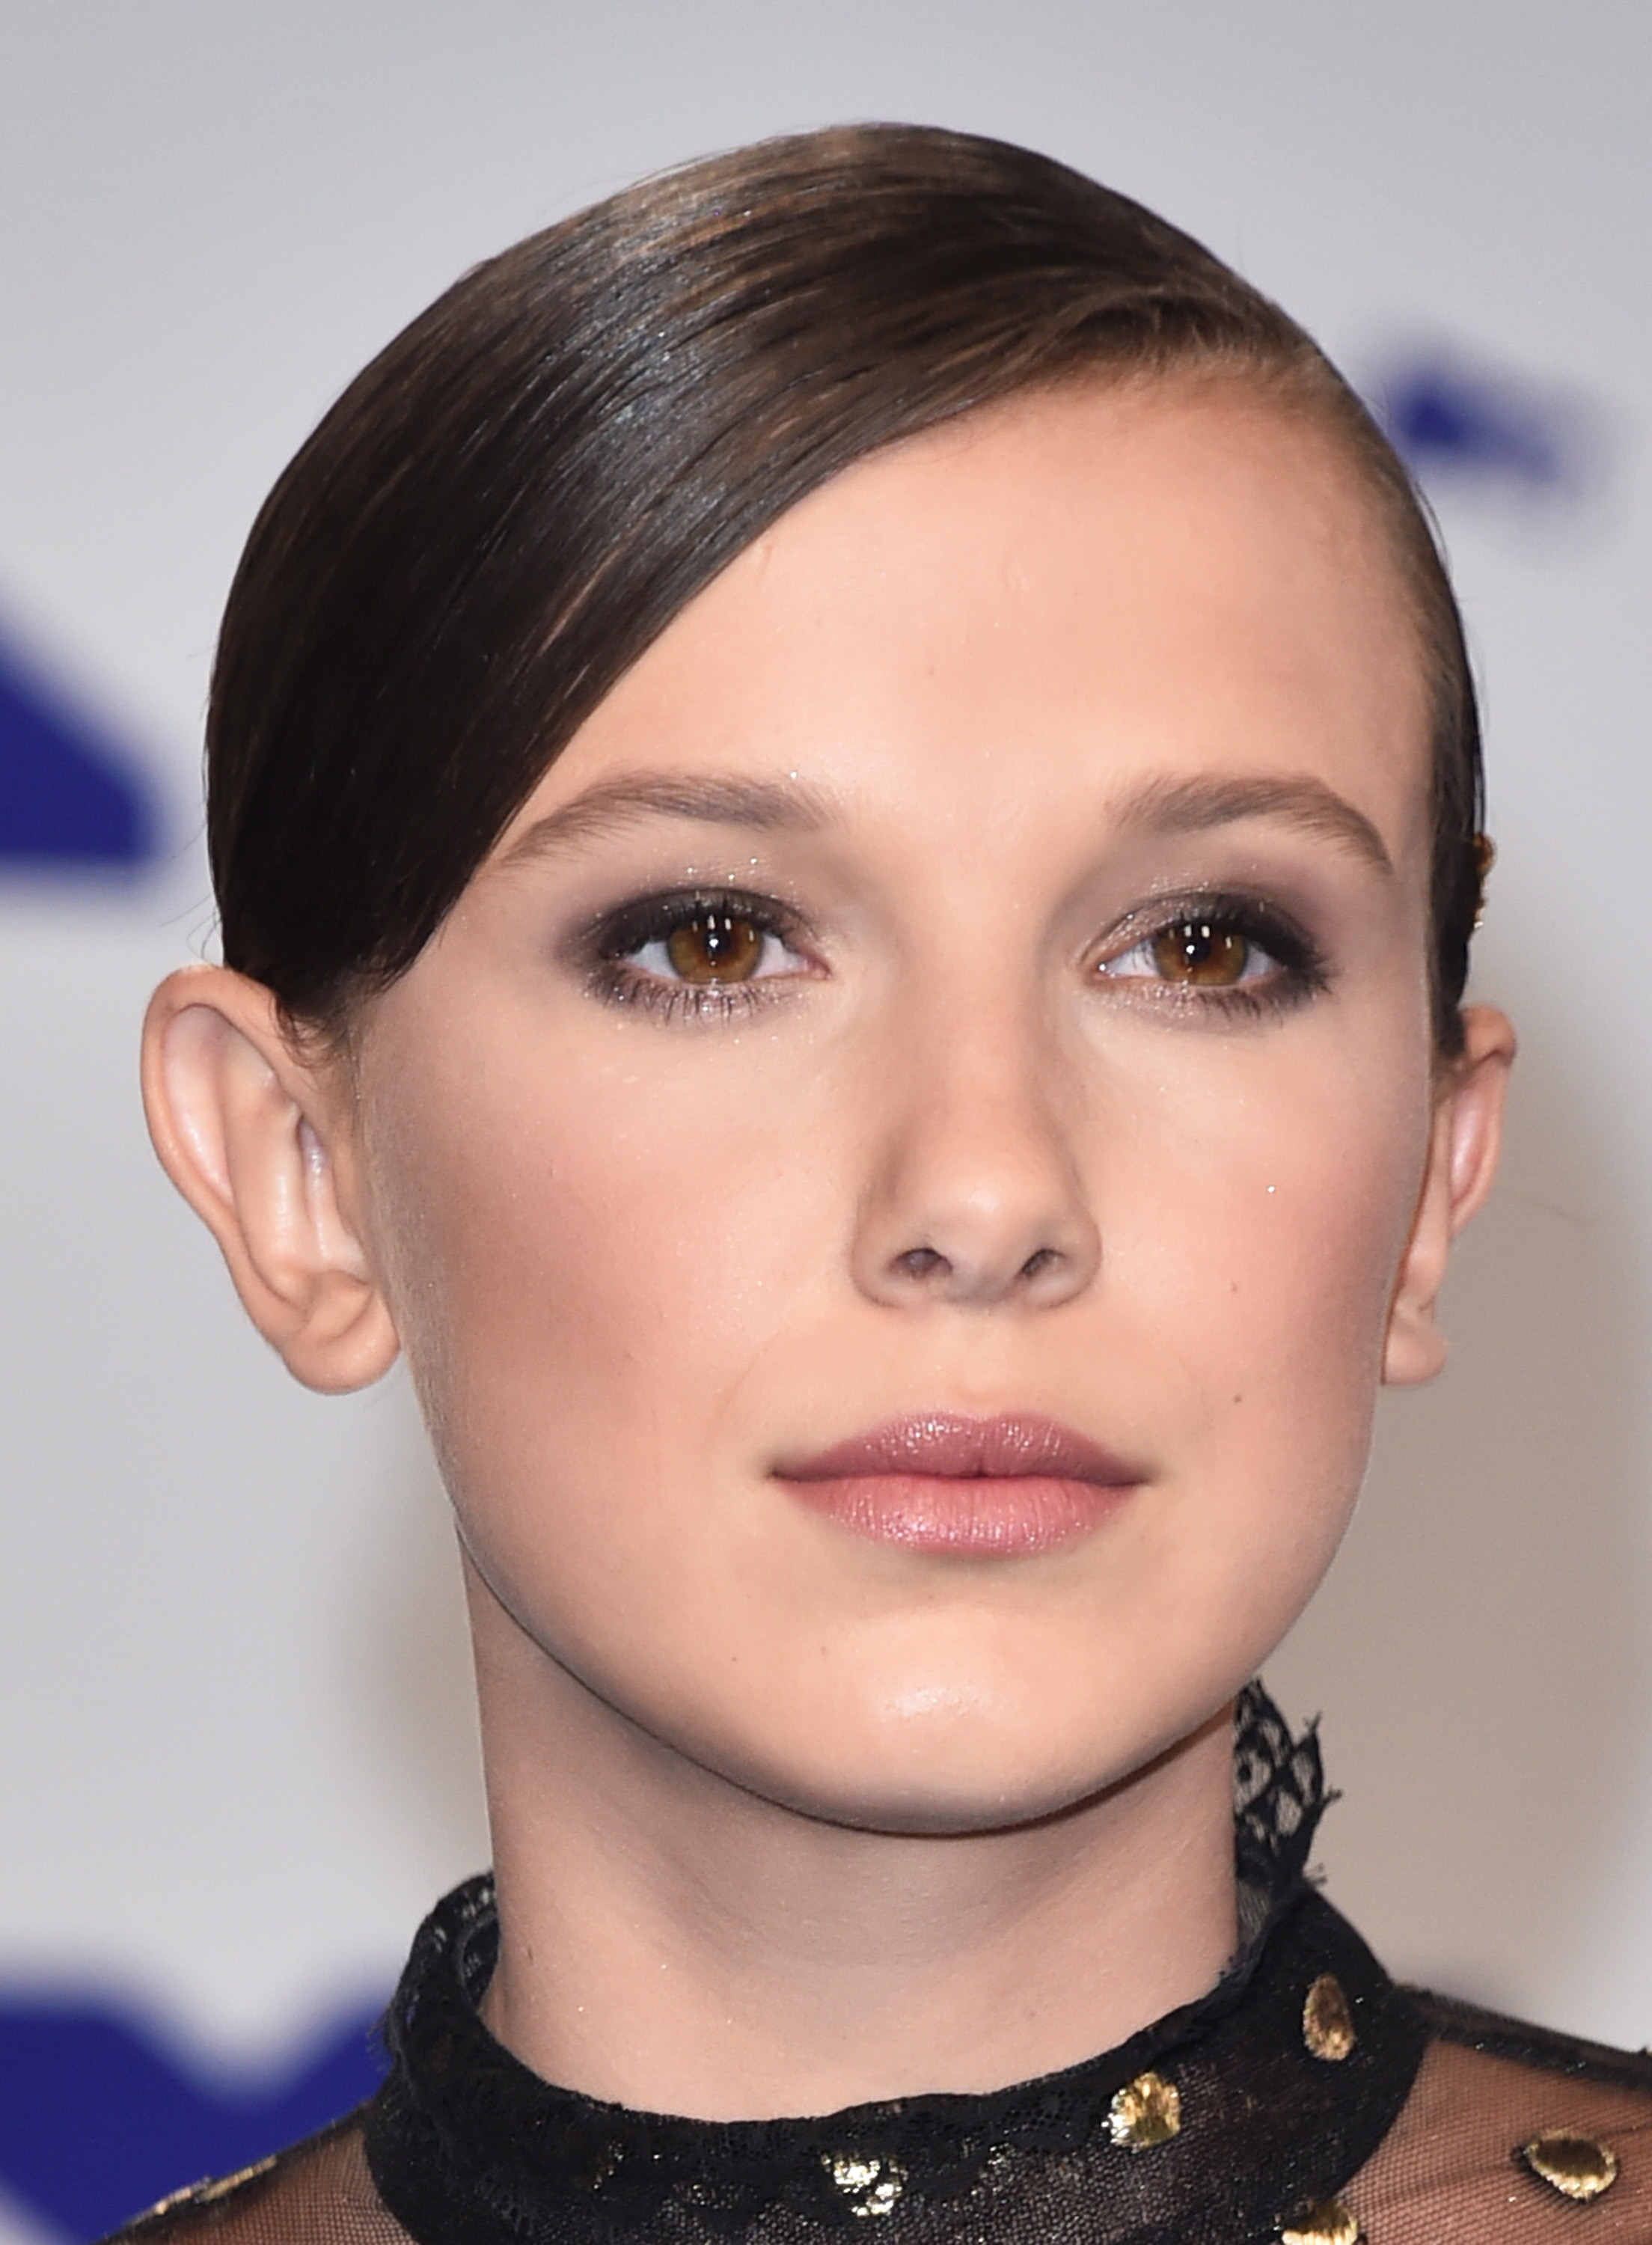 Millie Bobby Brown Net Worth, How much money did Millie Bobby Brown make filming stranger things